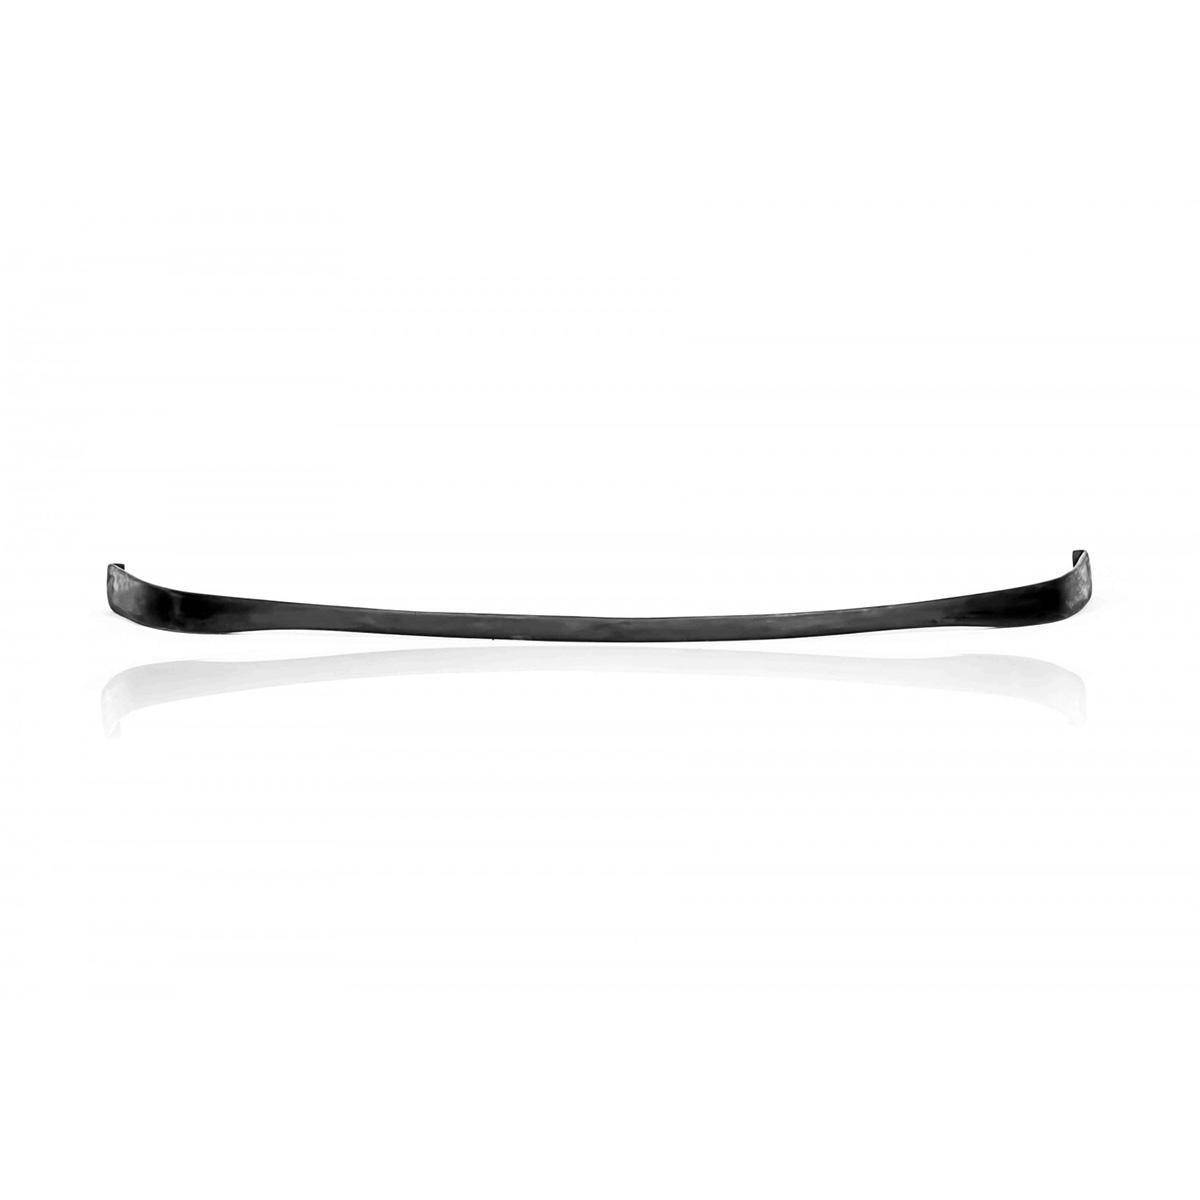 Acura Integra 1994-1997 Sir Spec Style 1 Piece Polyurethane Front Lip